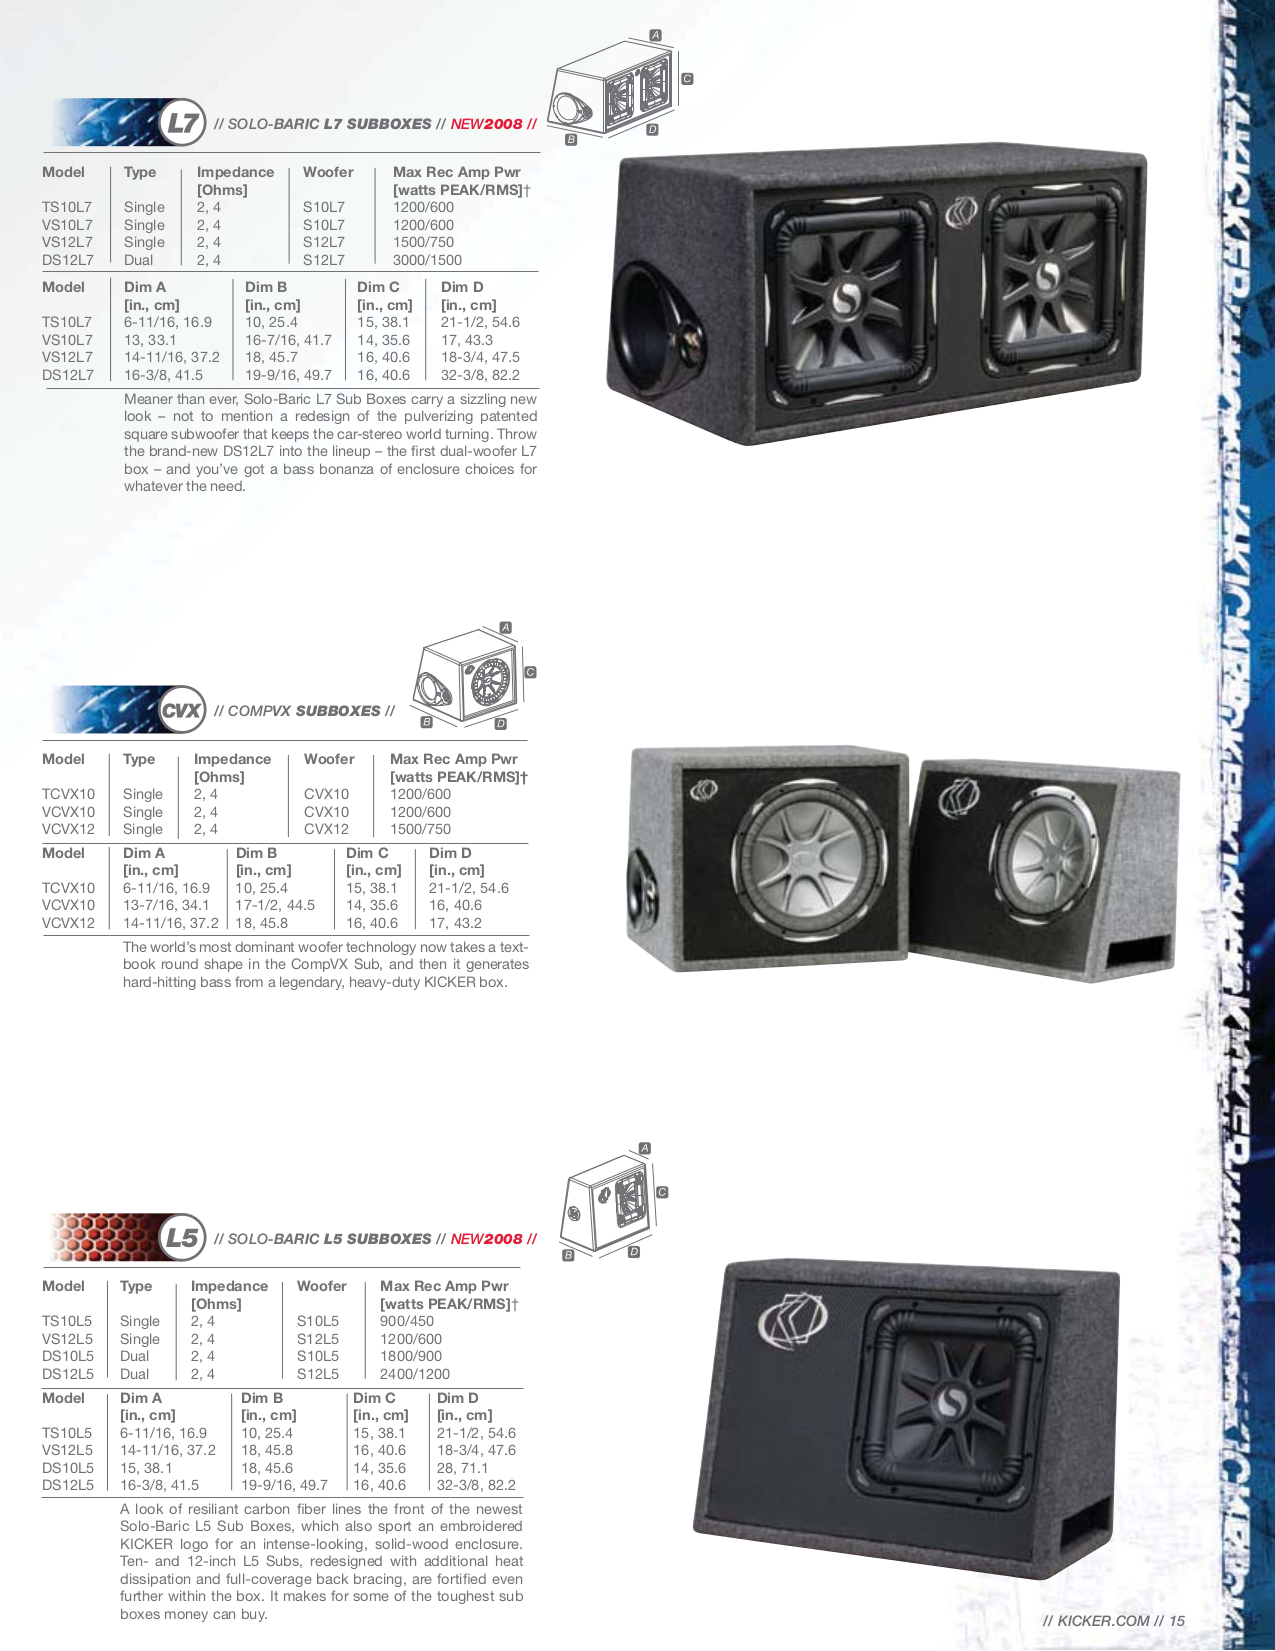 KICKER_08TSL5_SPEC.PDF 0 download free pdf for kicker solo baric l5 ts10l5 subwoofer manual kicker l5 15 wiring diagram at n-0.co